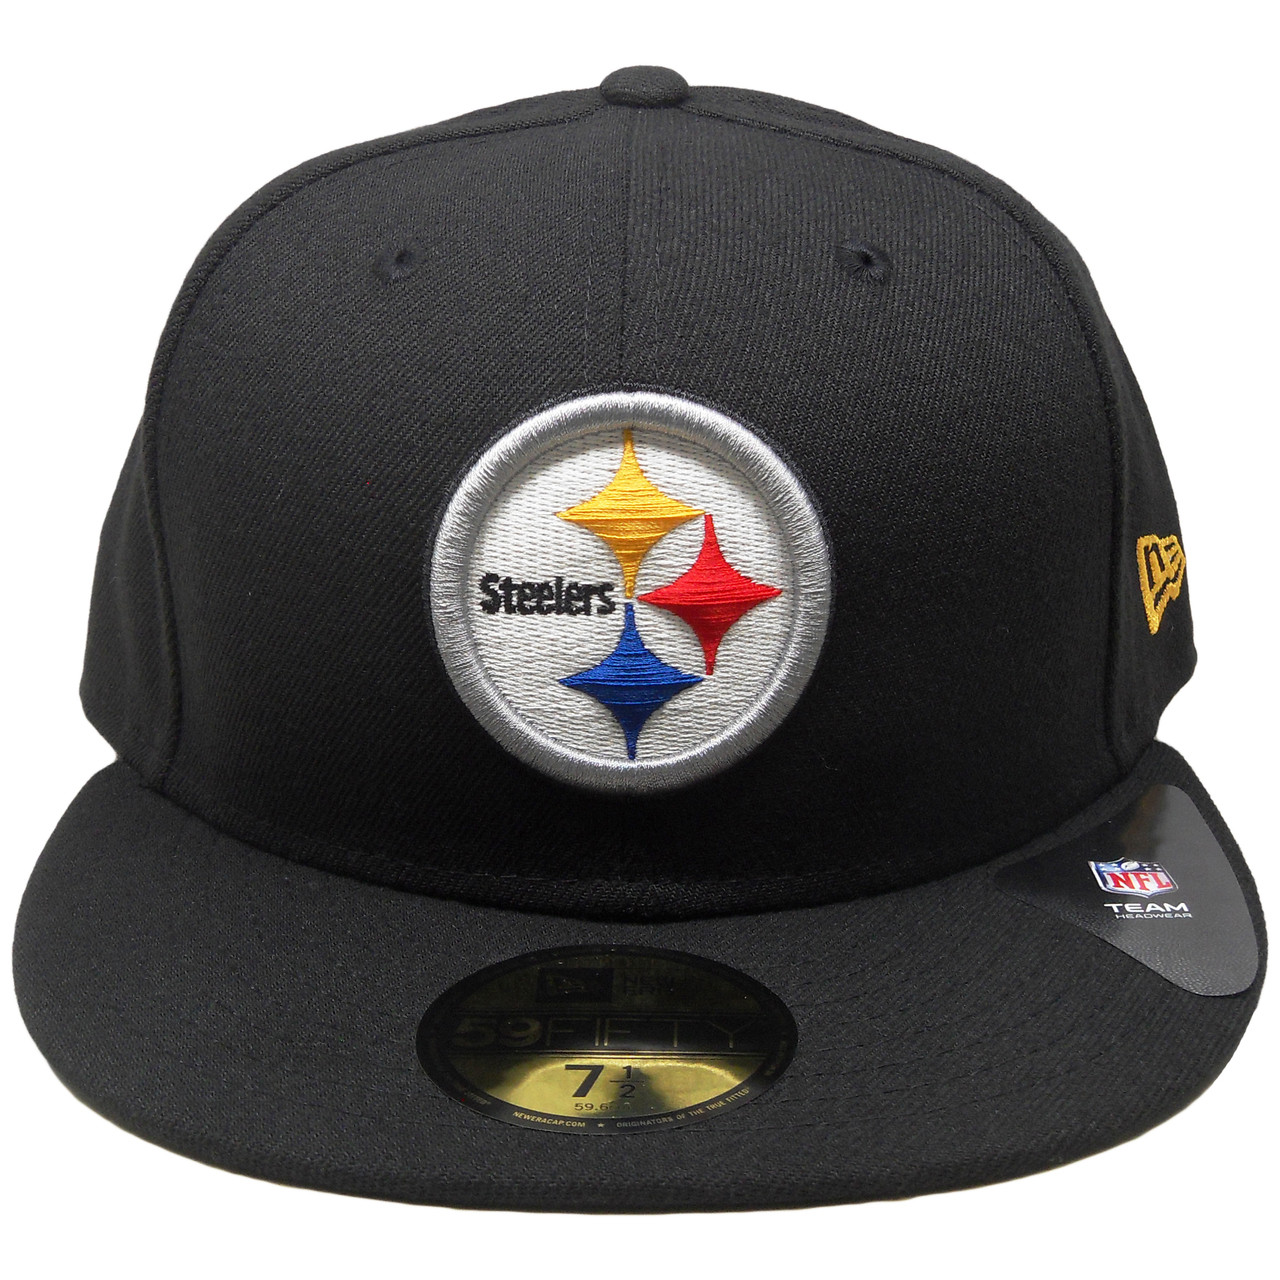 Pittsburgh Steelers New Era Classic Fitted Hat - Black c1705d0500a